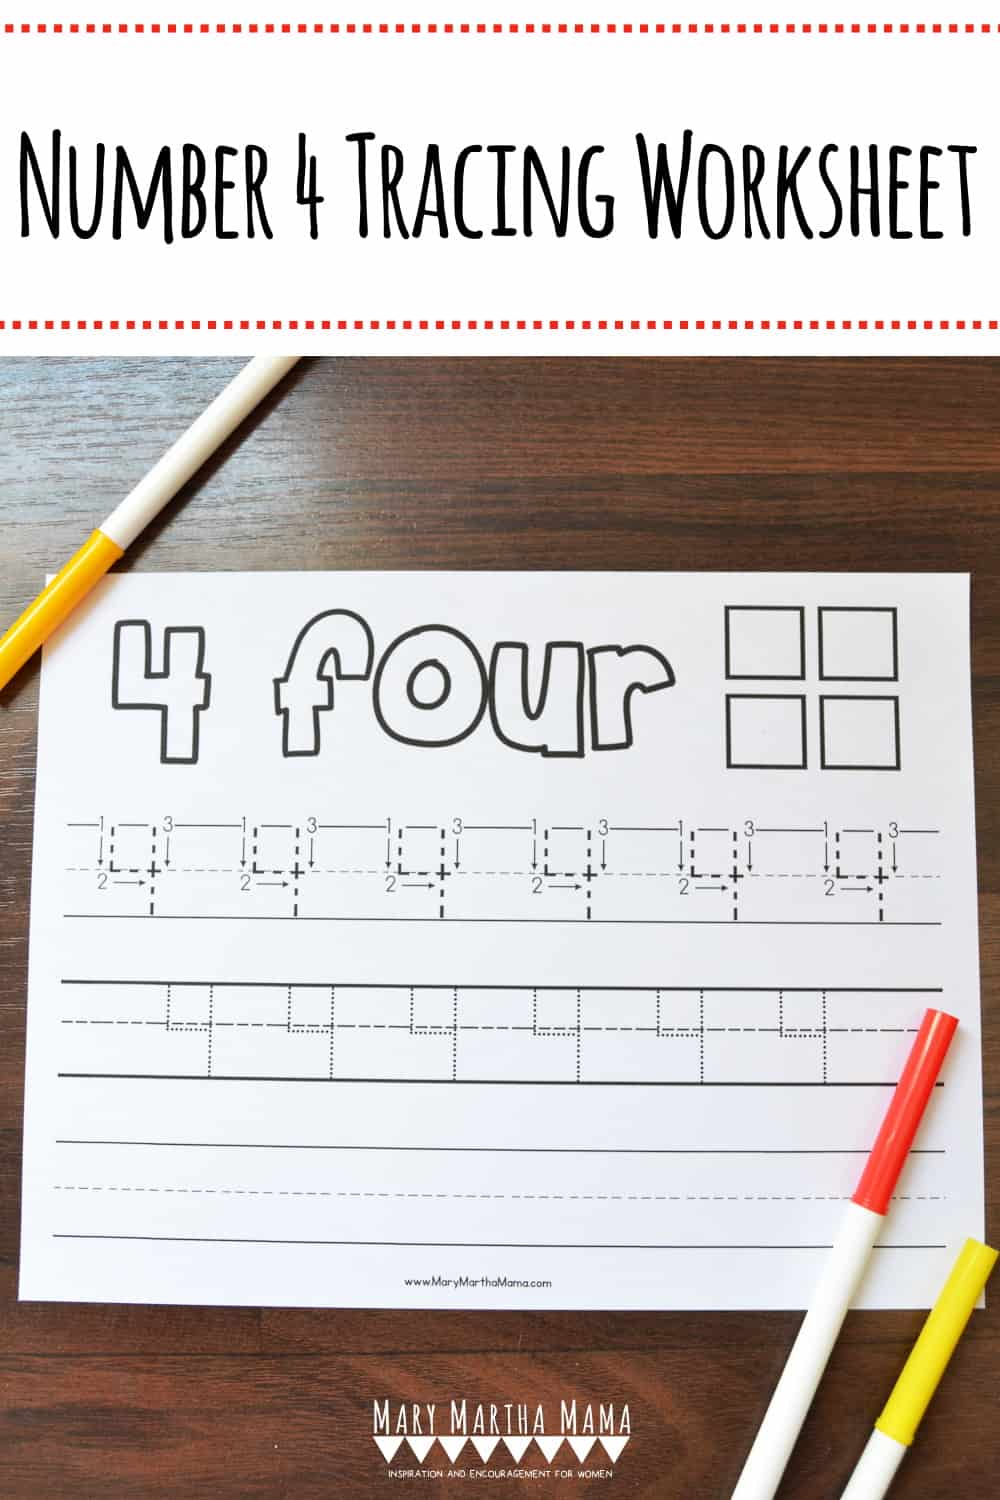 Use this free printable Number 4 Tracing Worksheet to help your kiddo learn how to write number 3. Features tracing with and without arrows to guide.